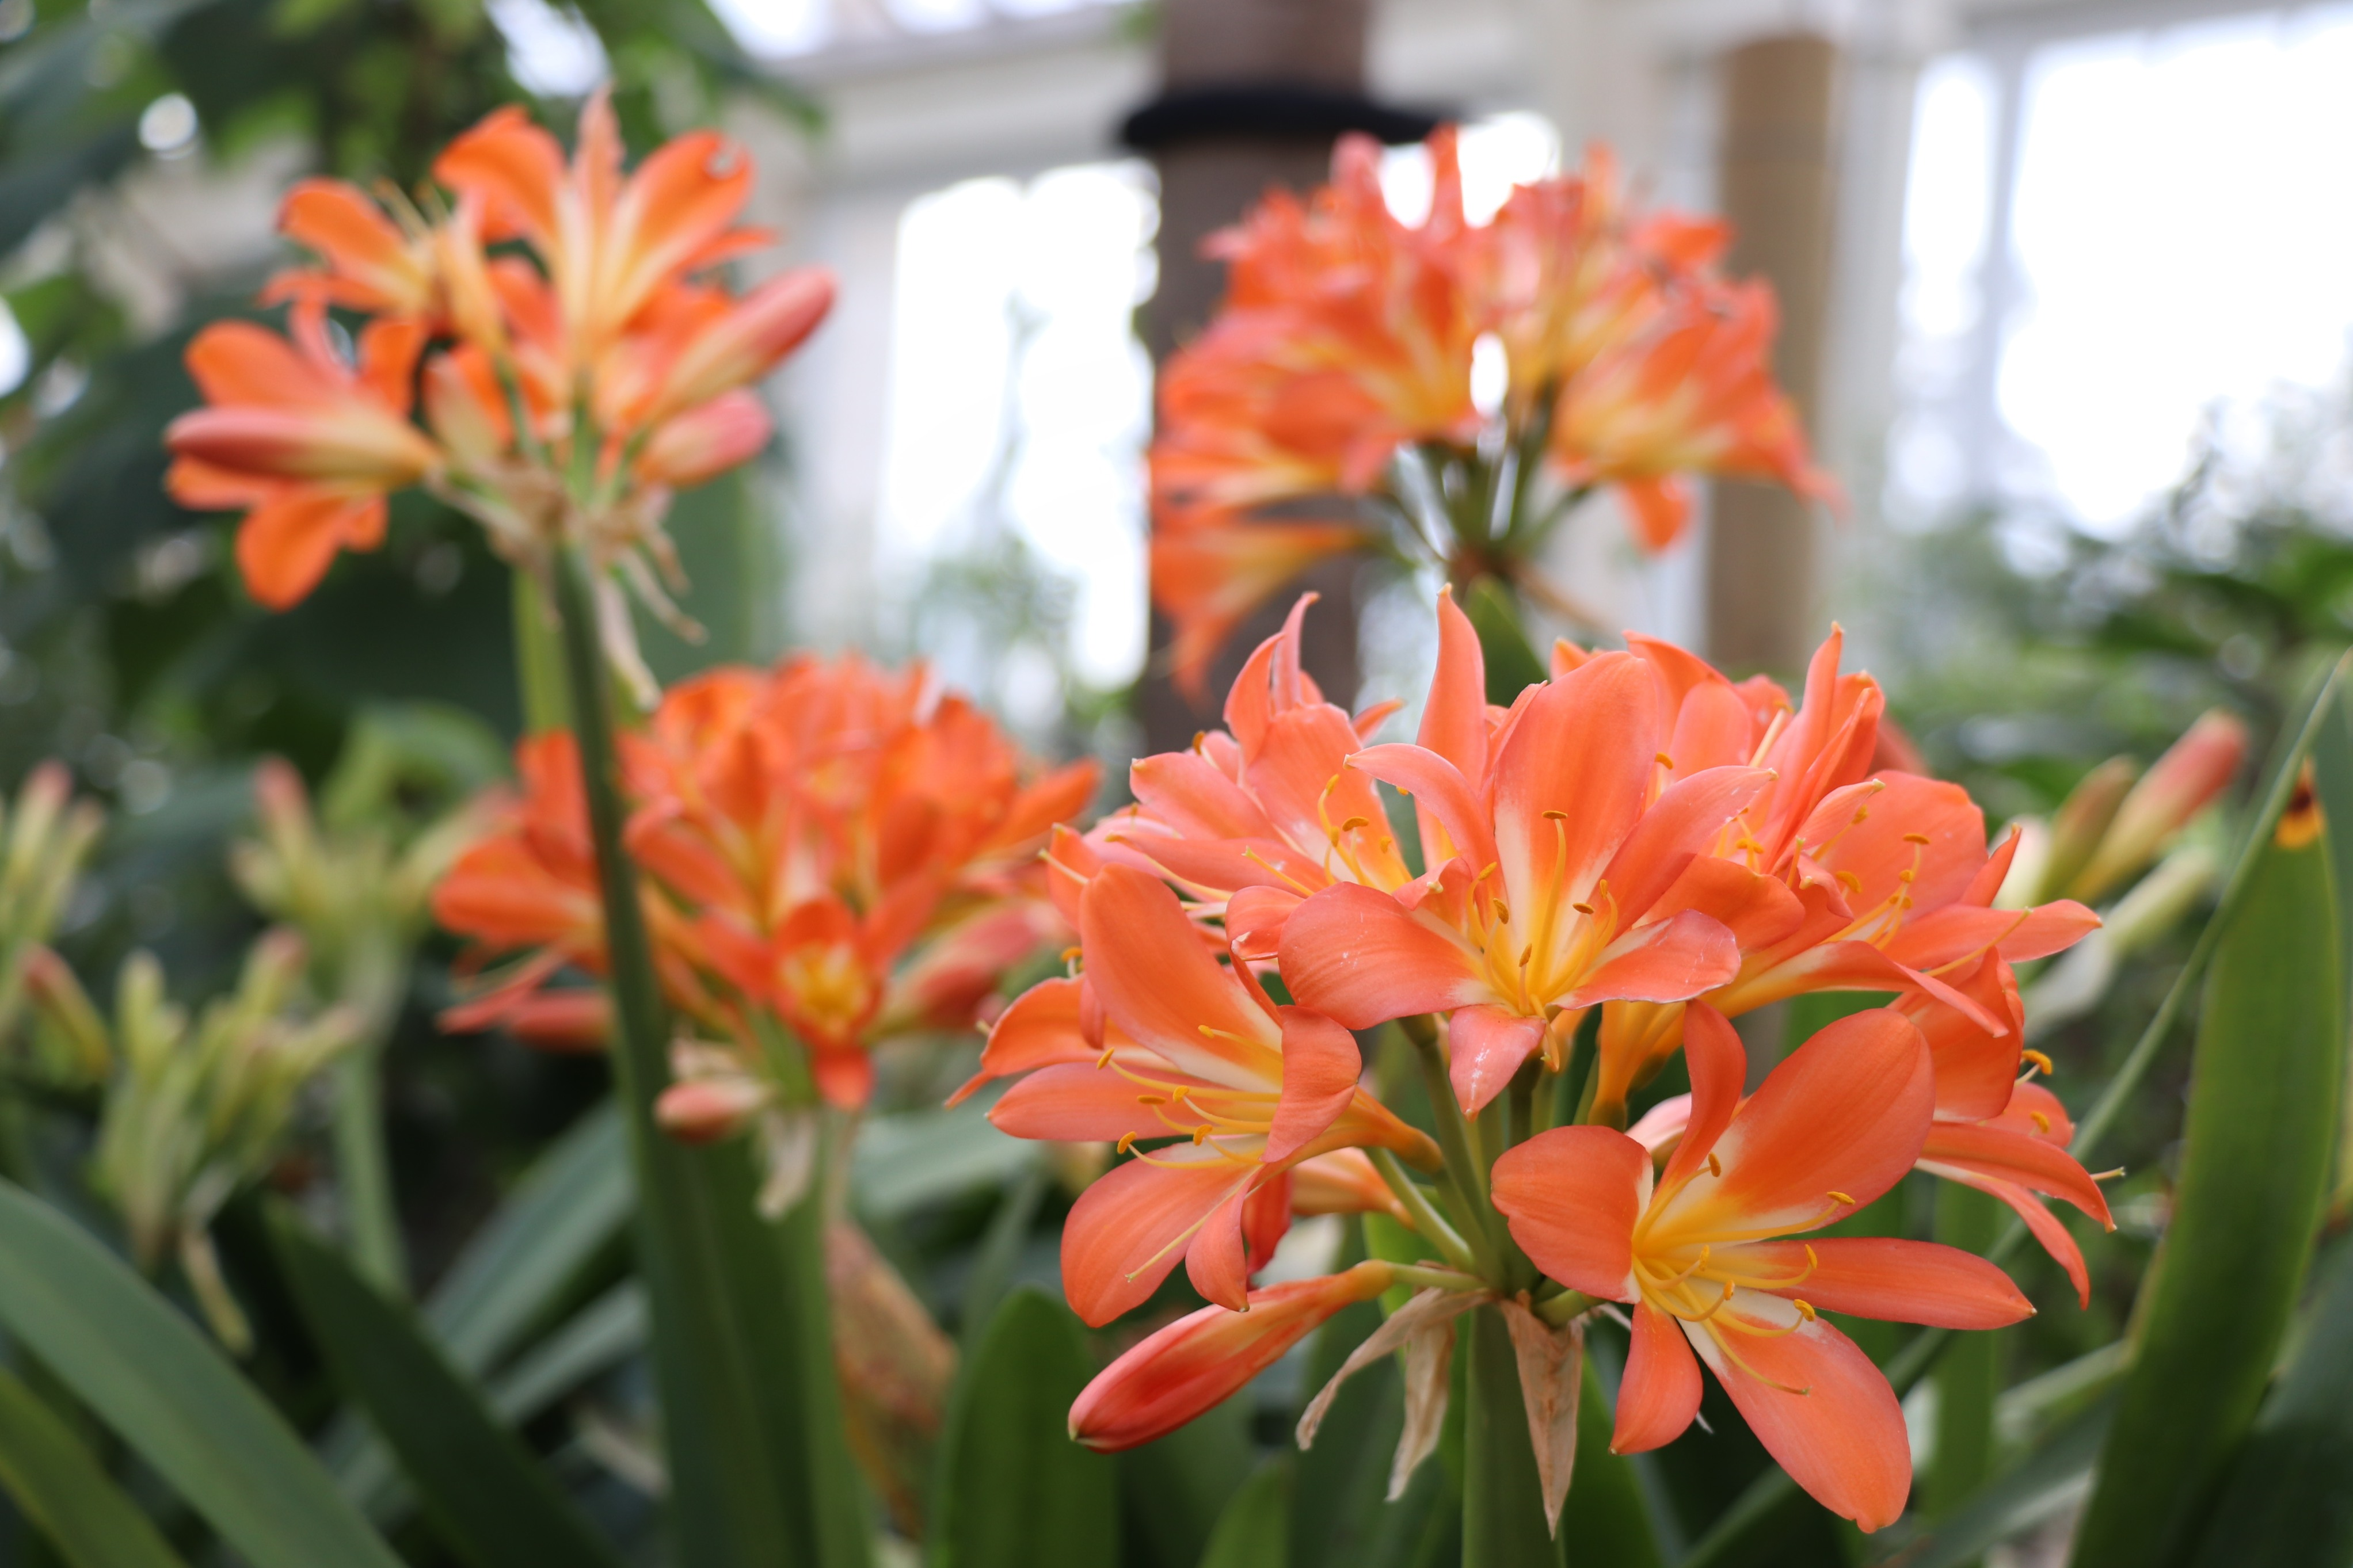 Orange flowers of Clivia miniata